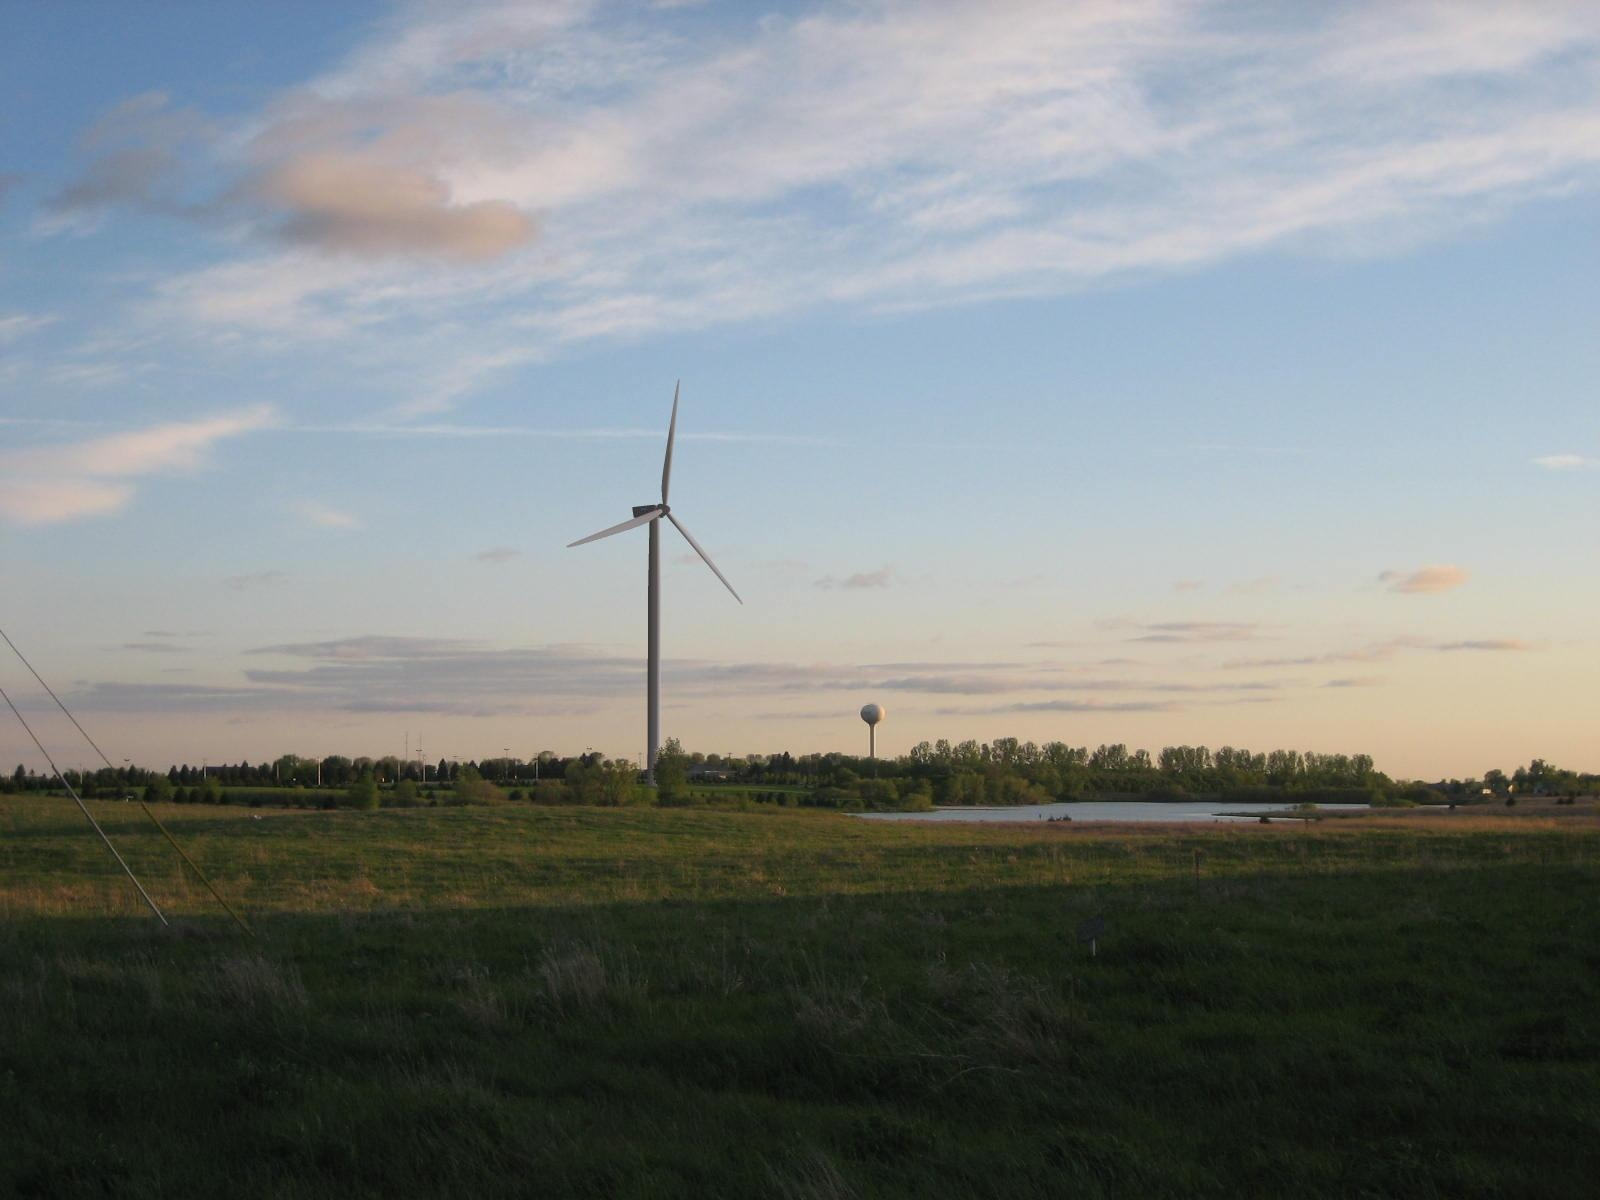 wind turbine in a field at sunrise